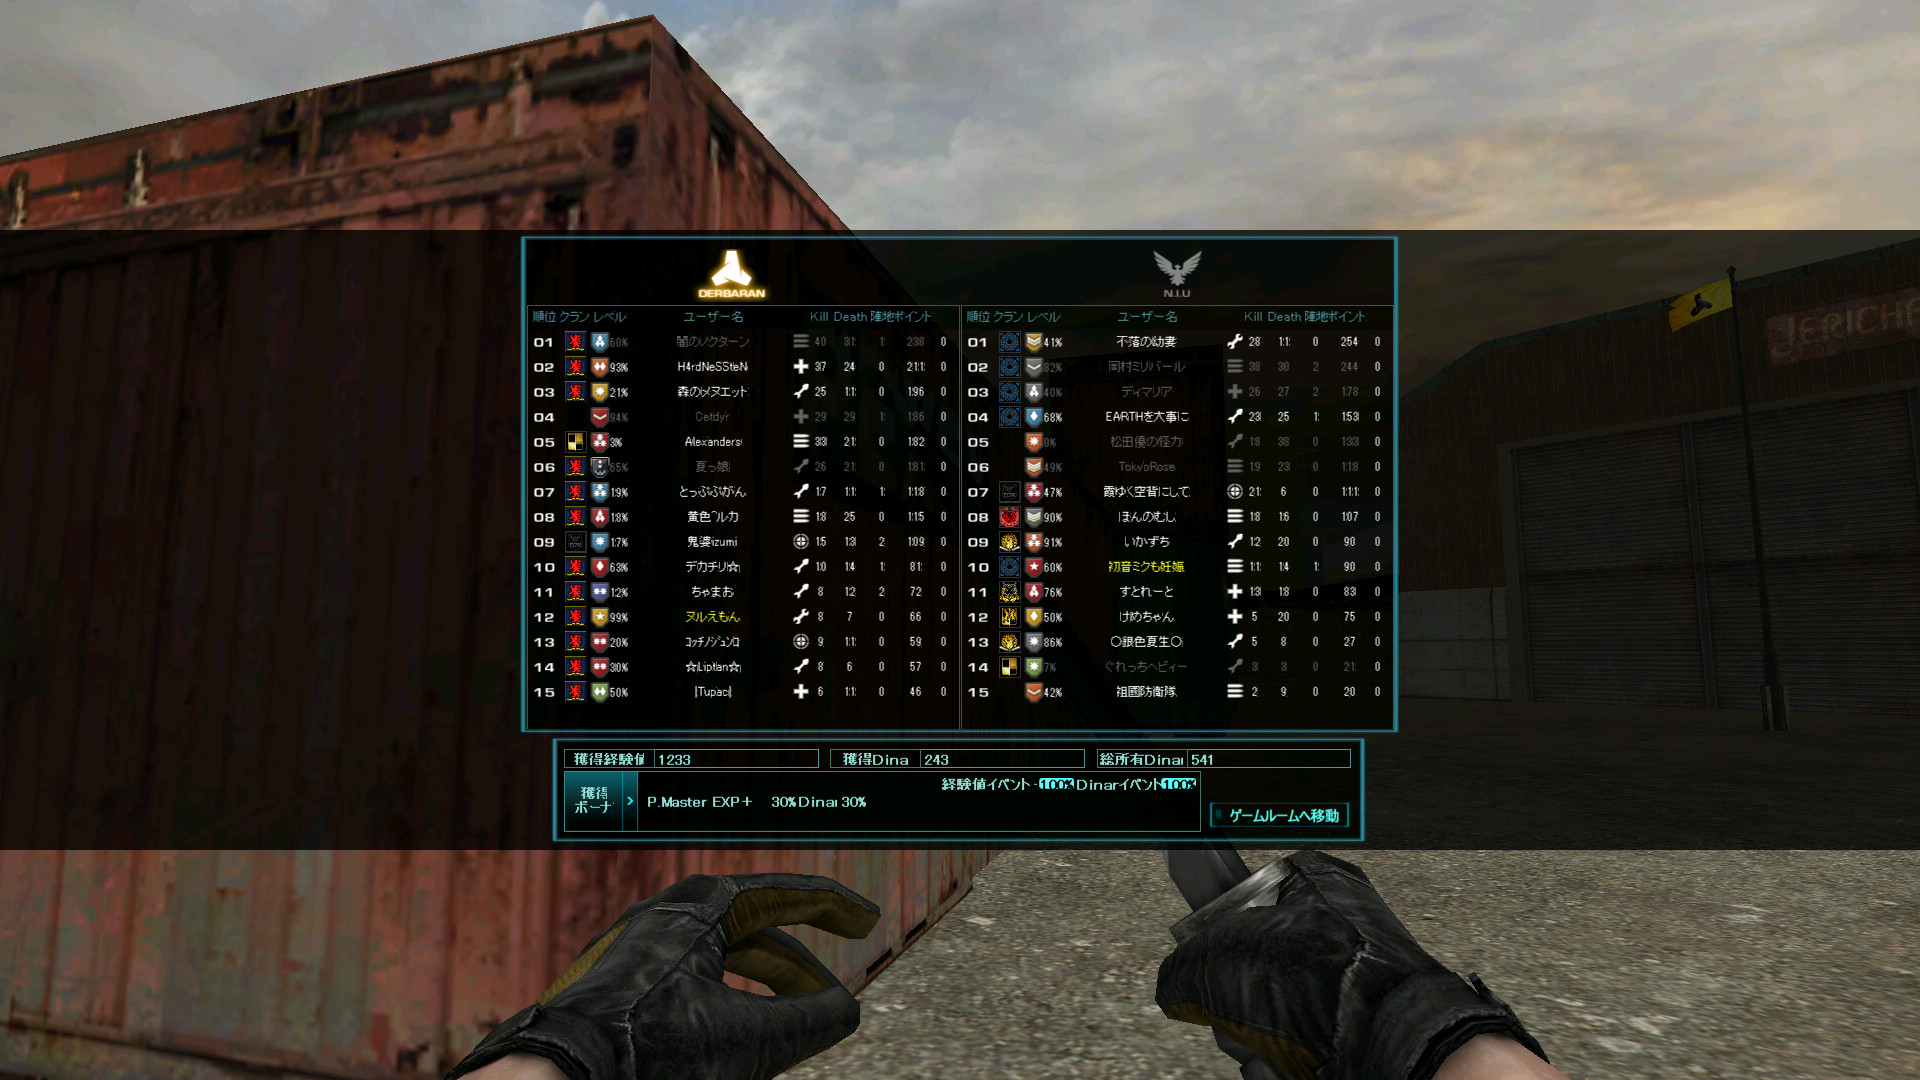 screenshot_206.jpg